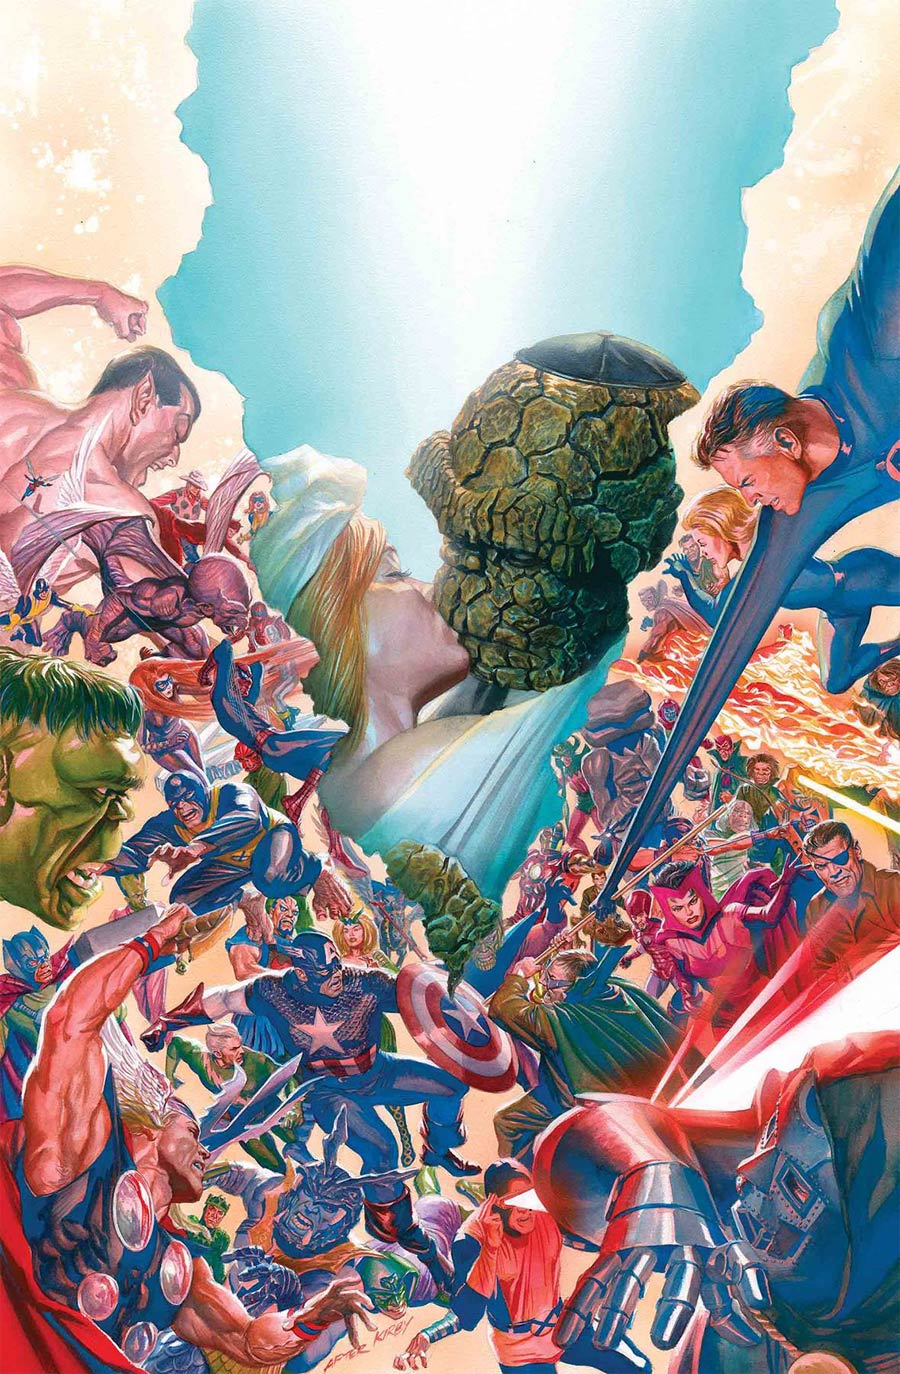 Fantastic Four Vol 6 #5 By Alex Ross Poster